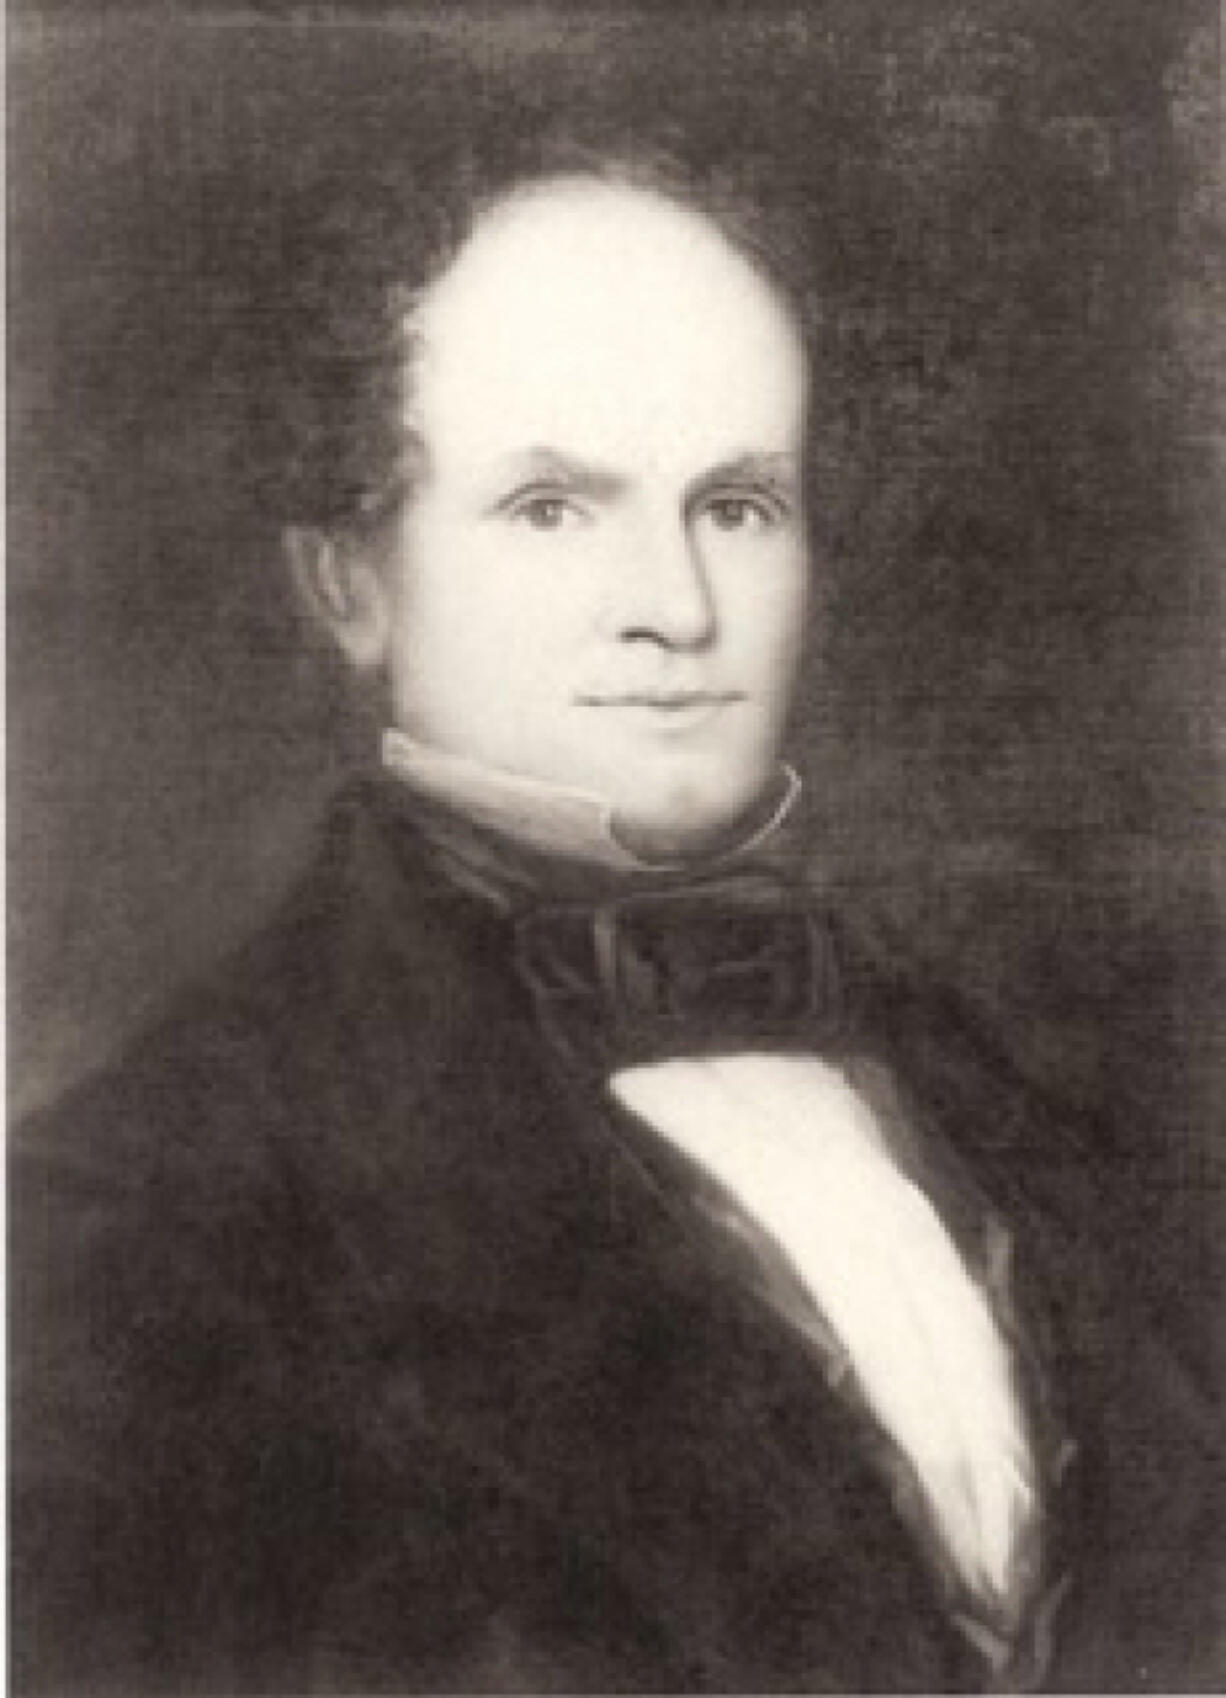 This painting of Columbia Lancaster hangs in the Washington State History Museum in Tacoma. His friends called him Judge because he sat on the Oregon Territorial Provisional Government Court before the Washington Territory was formed in 1853. Later he became the first district judge in the Washington Territory and its first delegate to Congress.